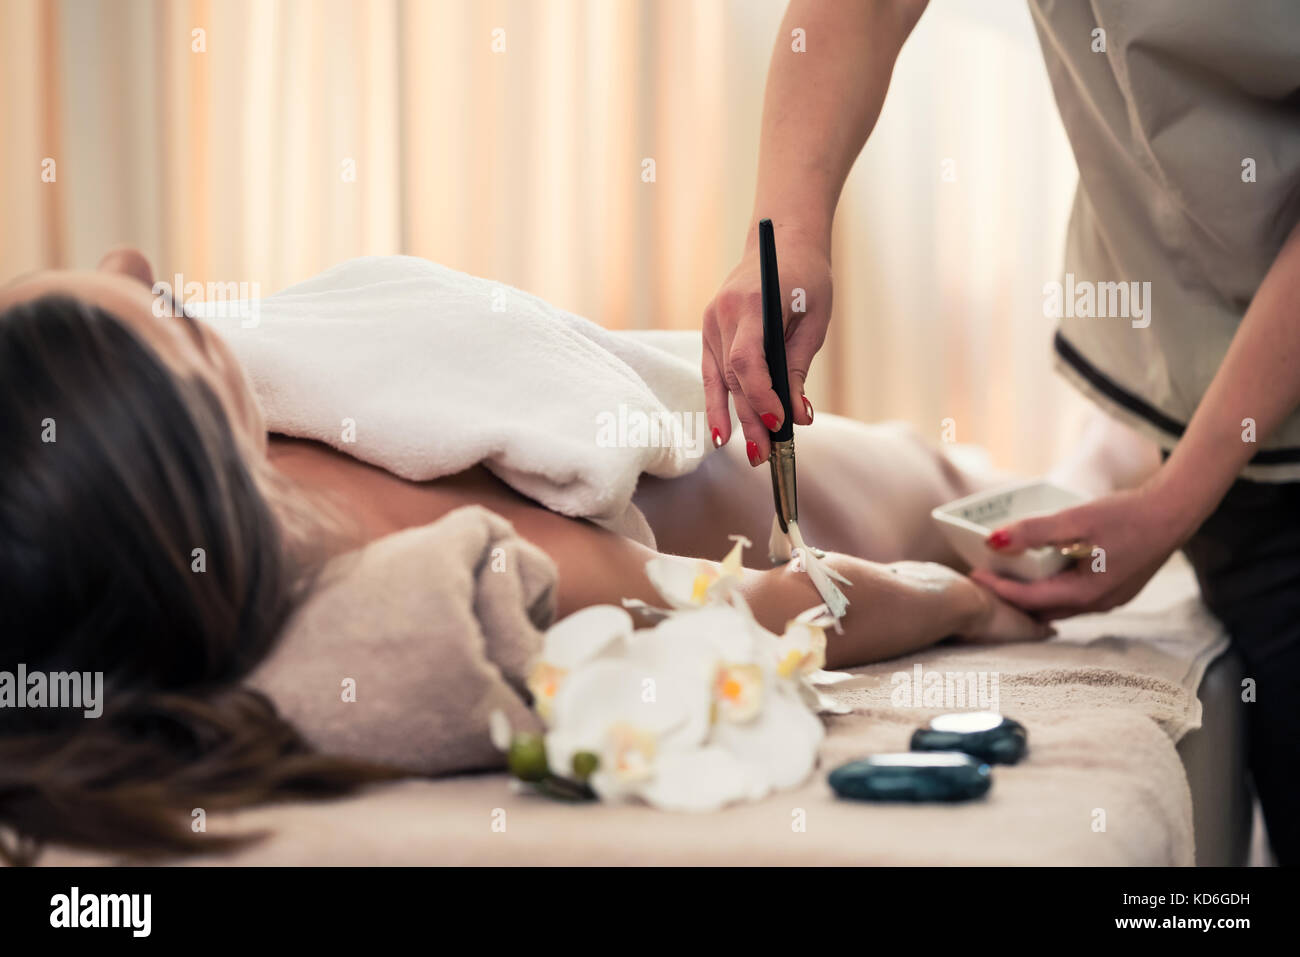 Woman lying down during Asian anti-aging treatment - Stock Image